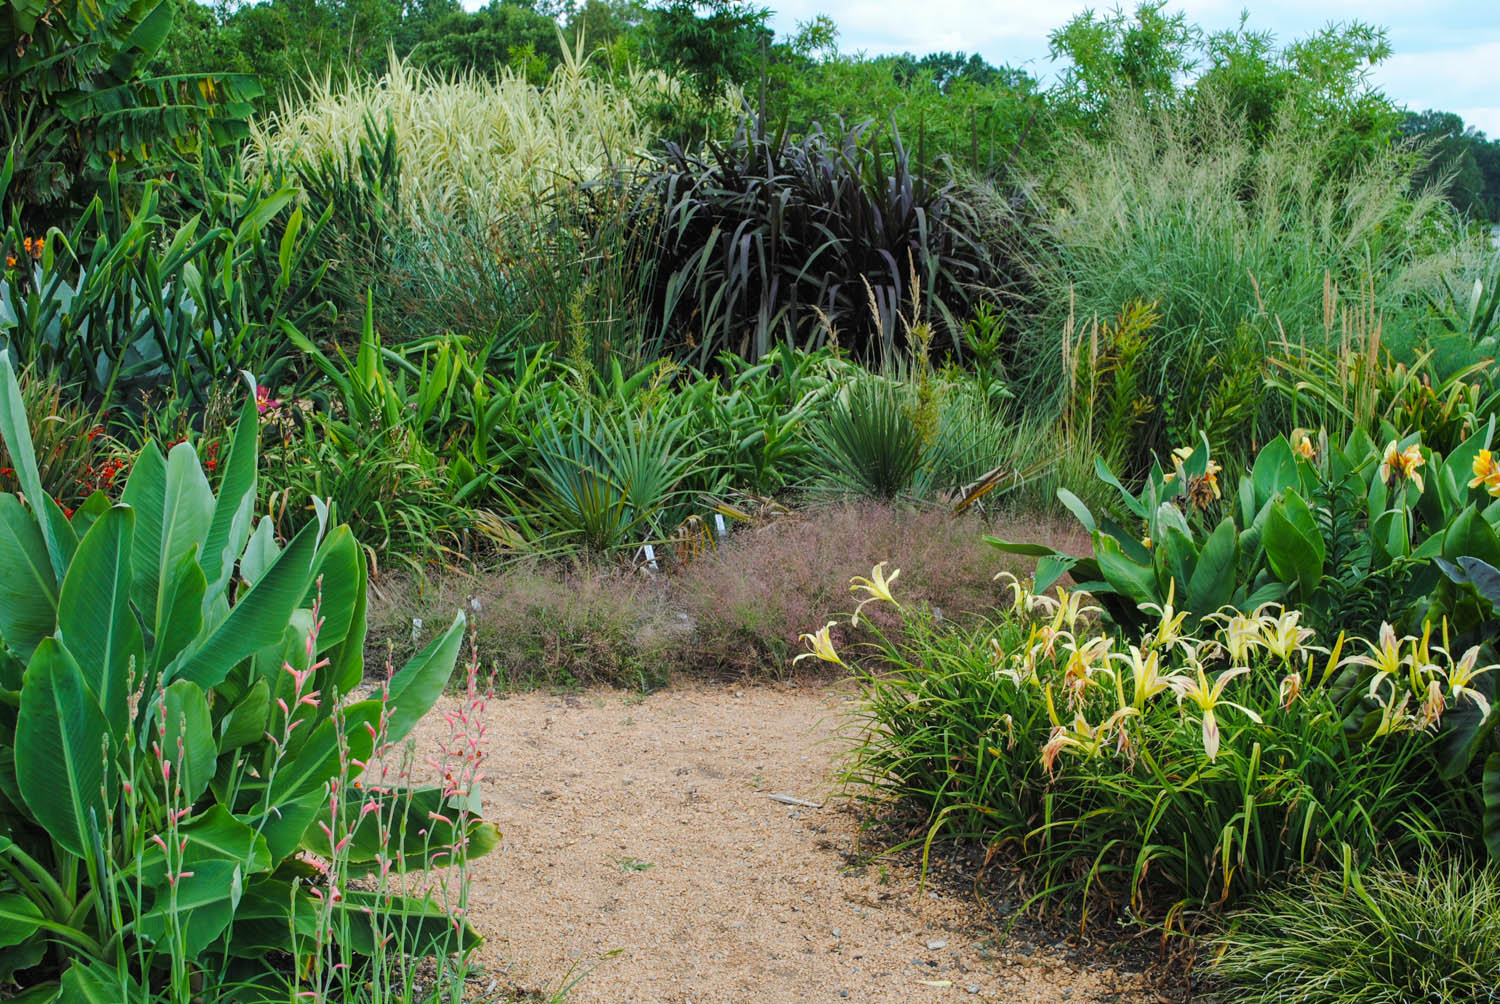 The monocot garden at the JC Raulston Arboretum was rich with texture and color in mid-July.